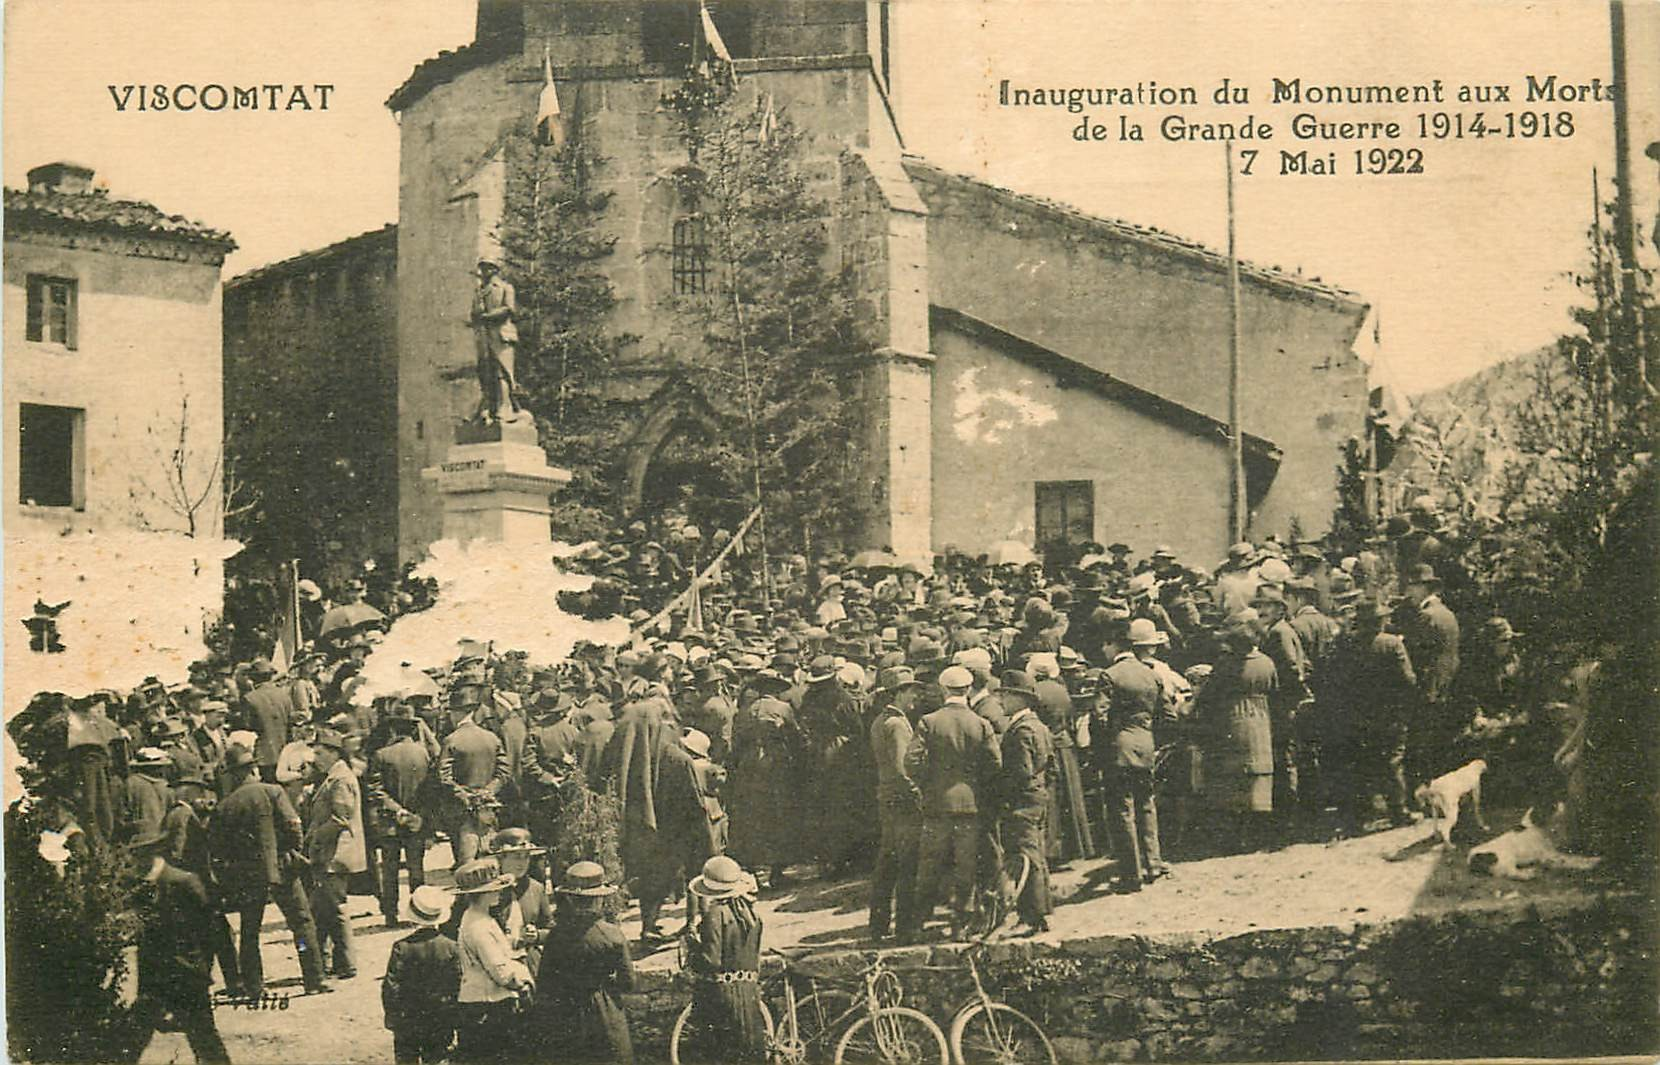 WW 63 VISCOMTAT. 1922 Inauguration Monuments aux Morts Guerre 14-18